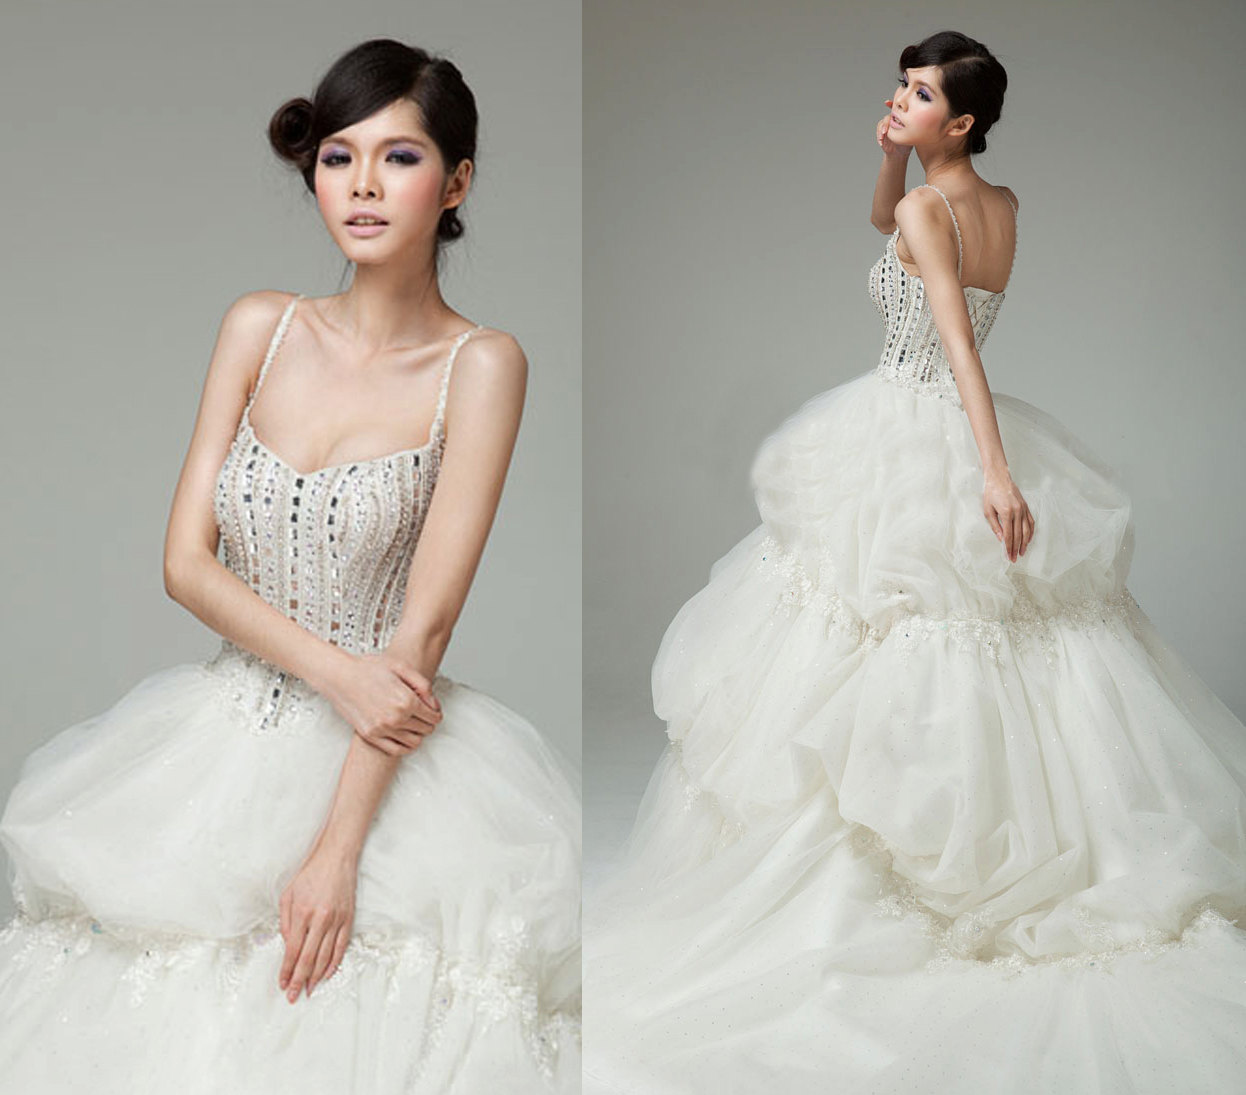 Non Traditional Wedding Dress Shopping Tips From Loho: Unique Wedding Dresses Non White Bridal Gown Beige